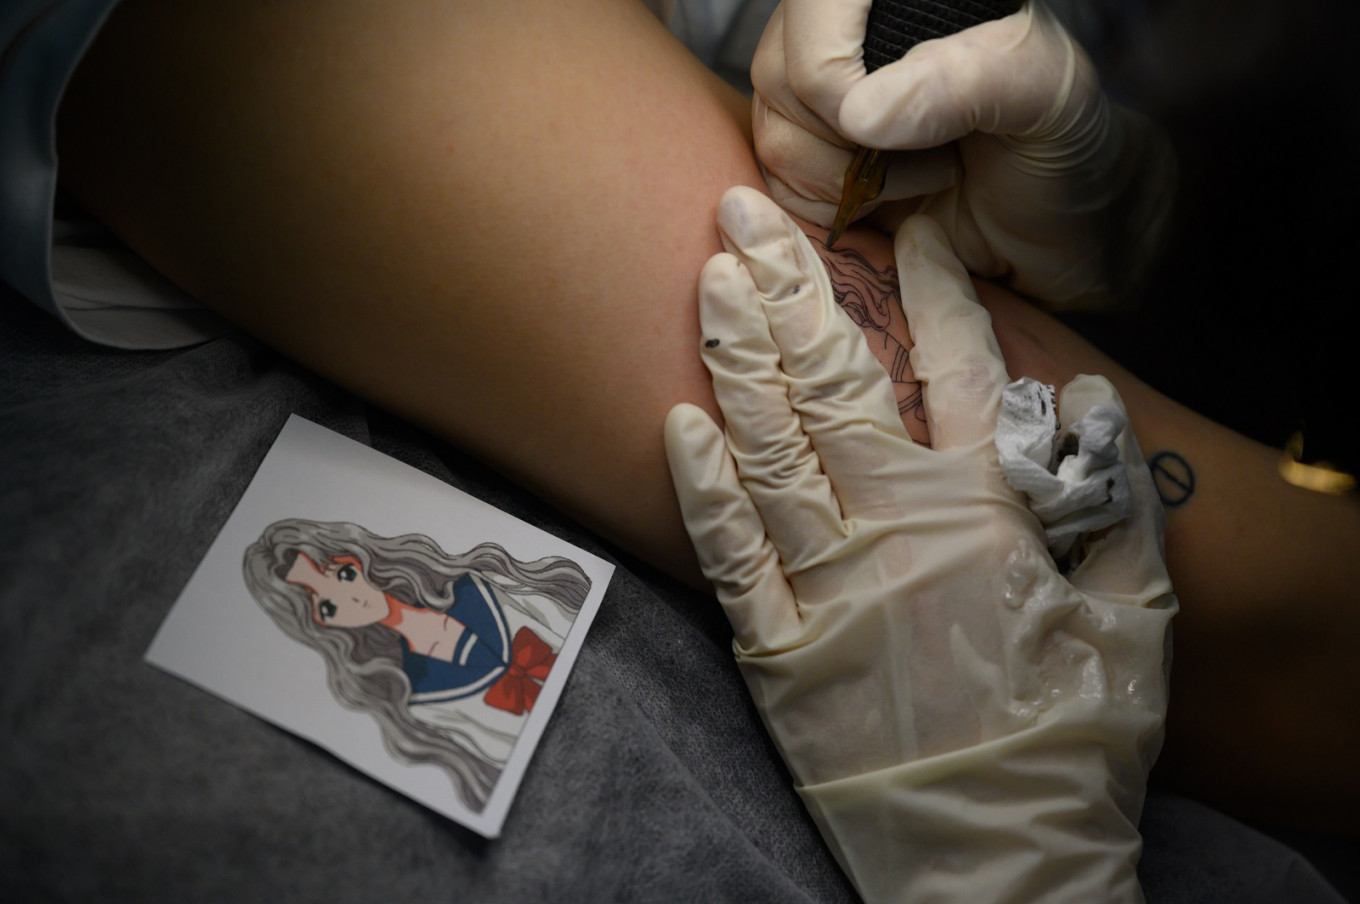 Tattoo artists warn of dangers of 'semi-permanent tattoos'